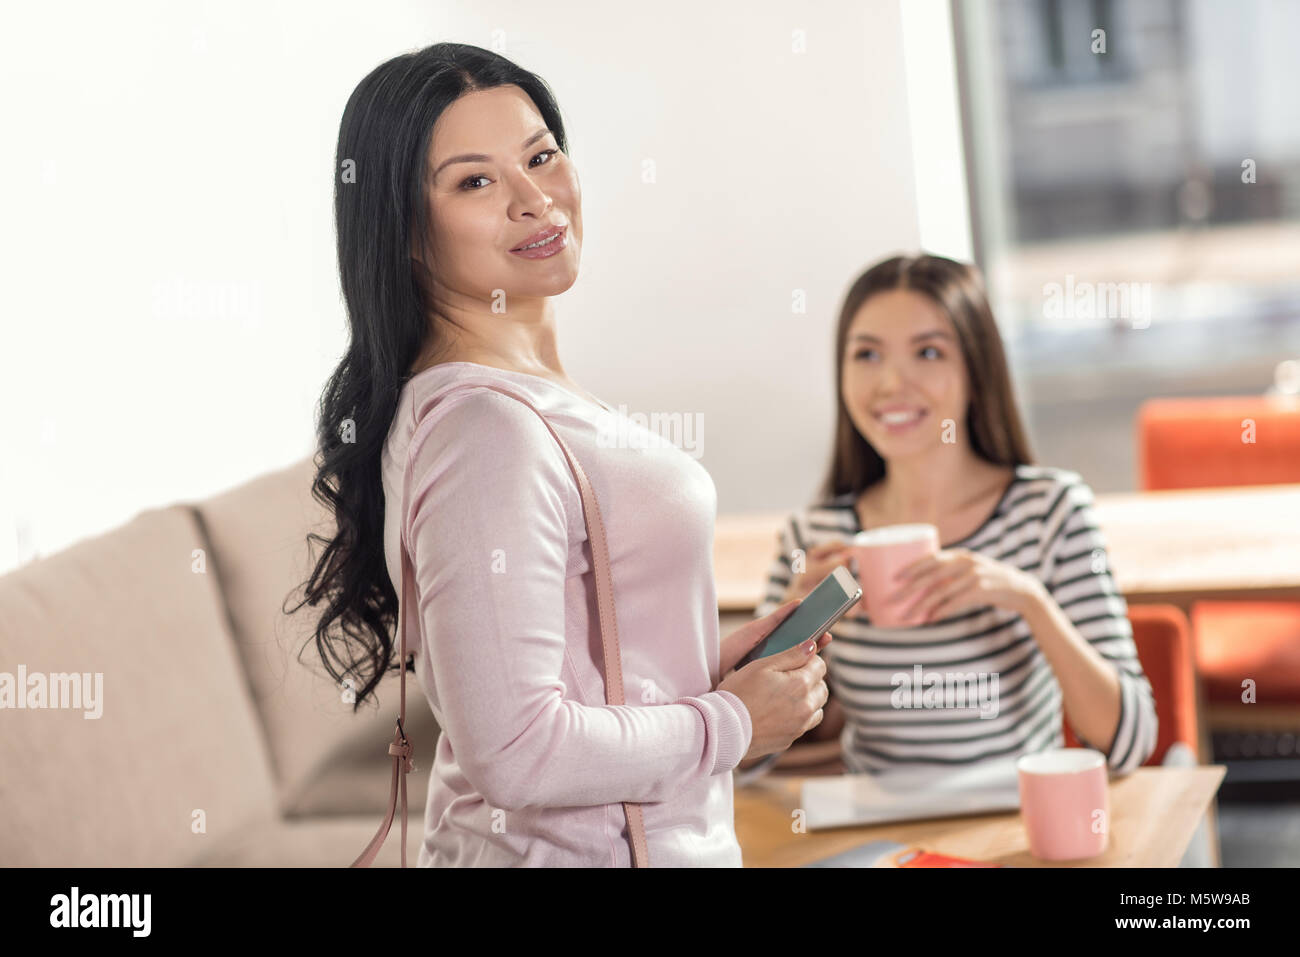 Positive nice woman standing behind her friend - Stock Image